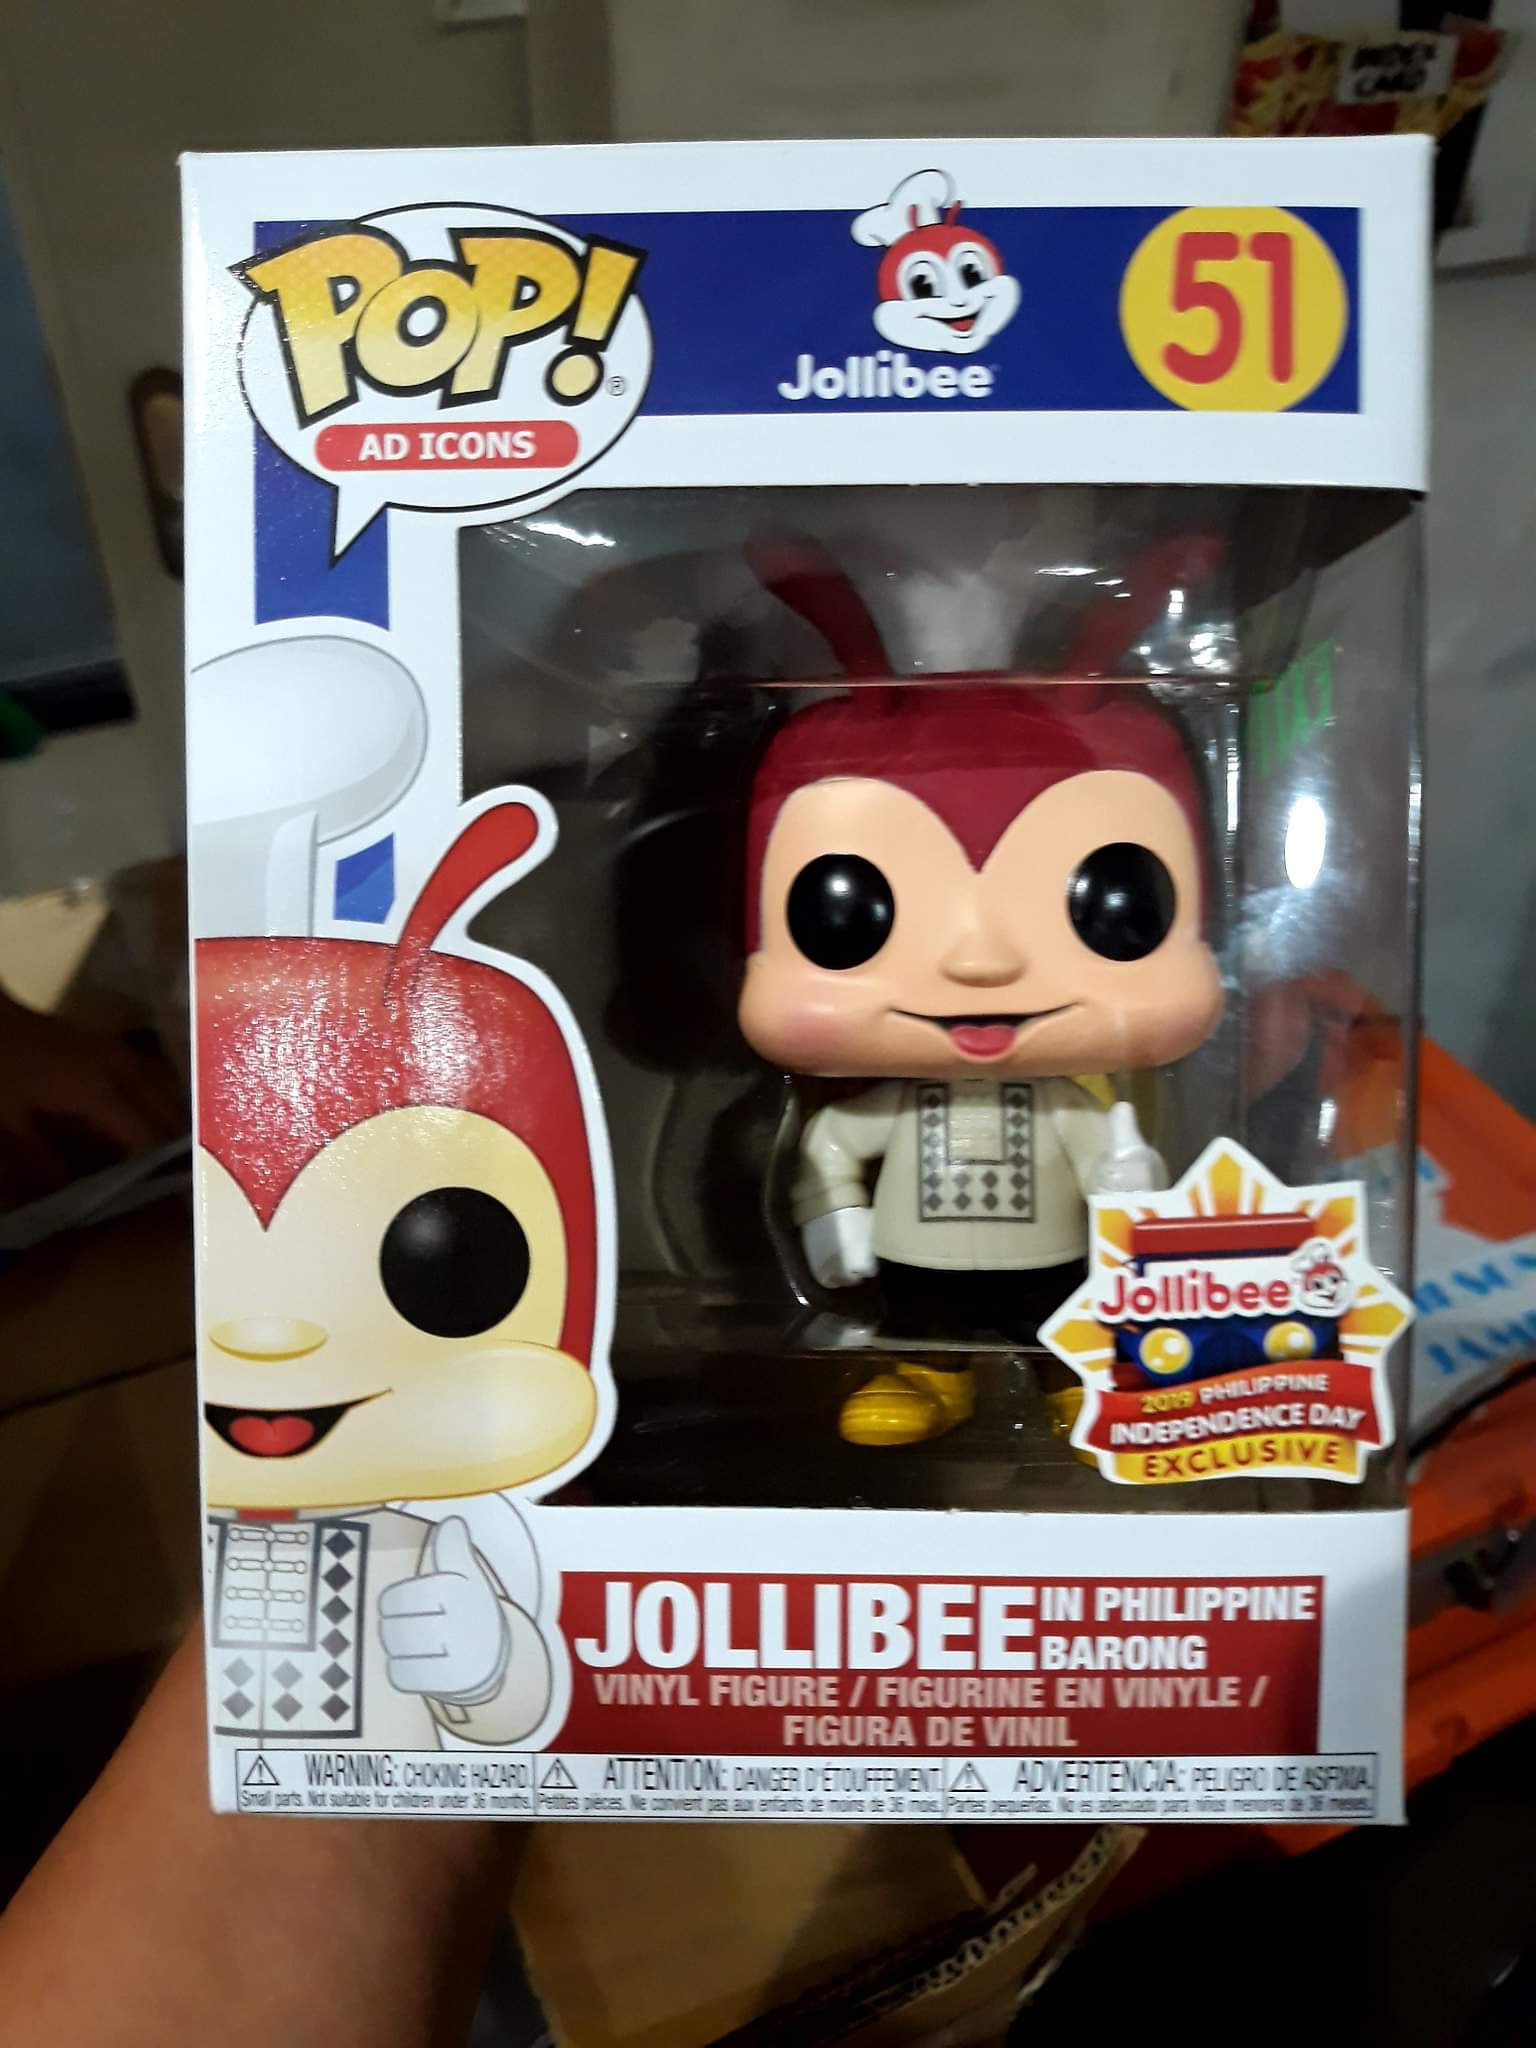 144 pieces for each stores for Jollibee in Barong Funko Pop